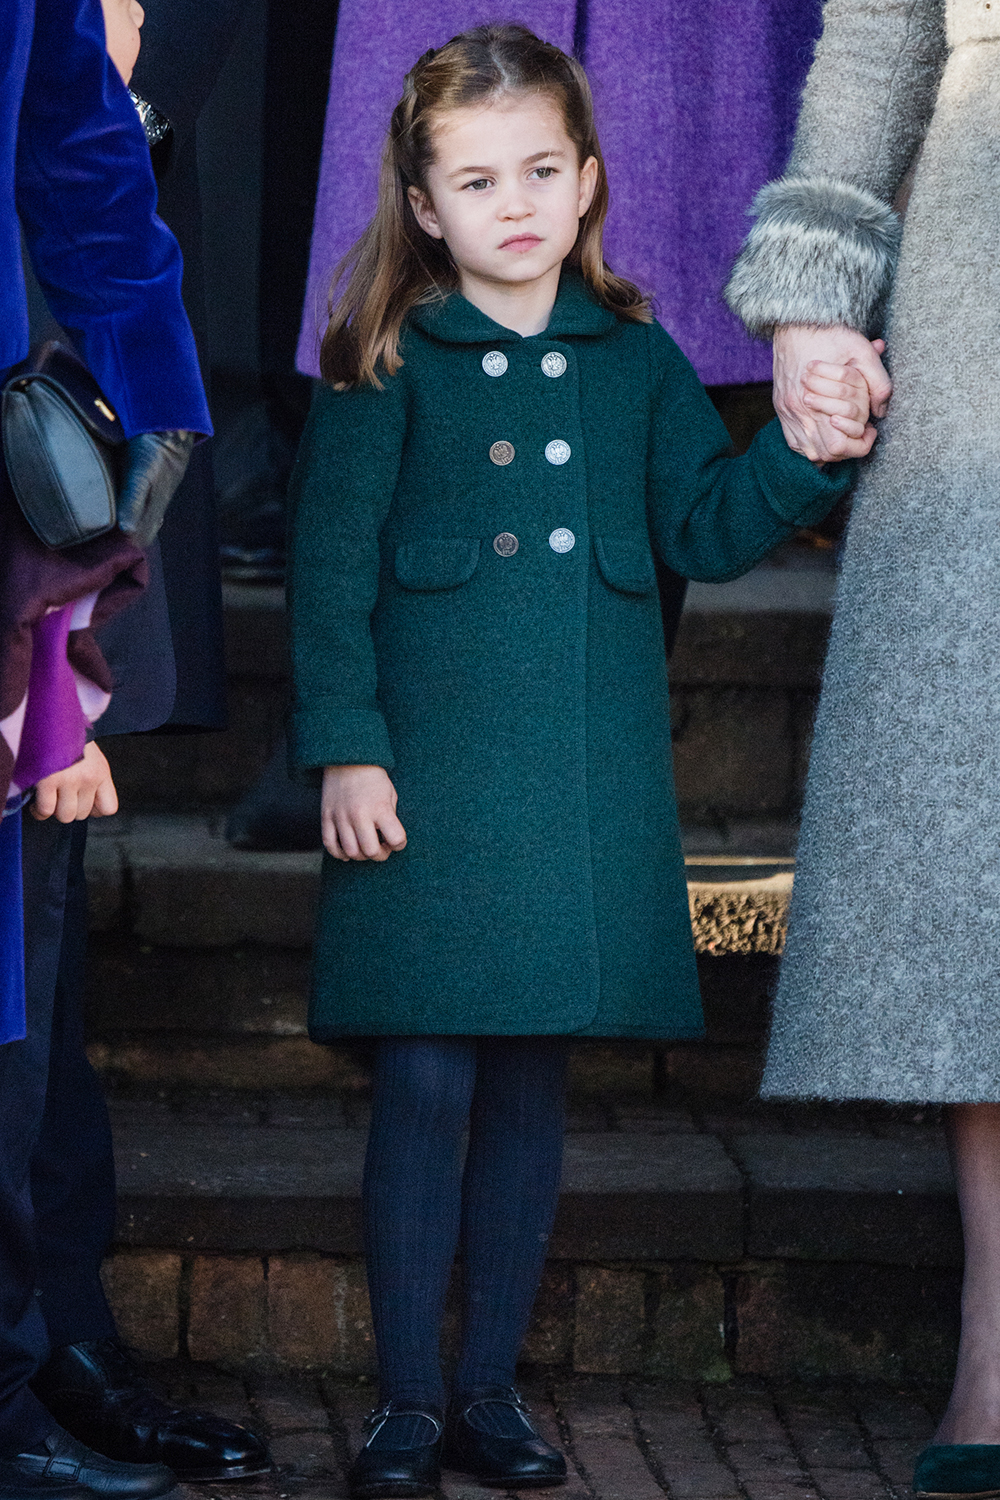 KING'S LYNN, ENGLAND - DECEMBER 25: Princess Charlotte attends the Christmas Day Church service at Church of St Mary Magdalene on the Sandringham estate on December 25, 2019 in King's Lynn, United Kingdom. (Photo by Pool/Samir Hussein/WireImage)